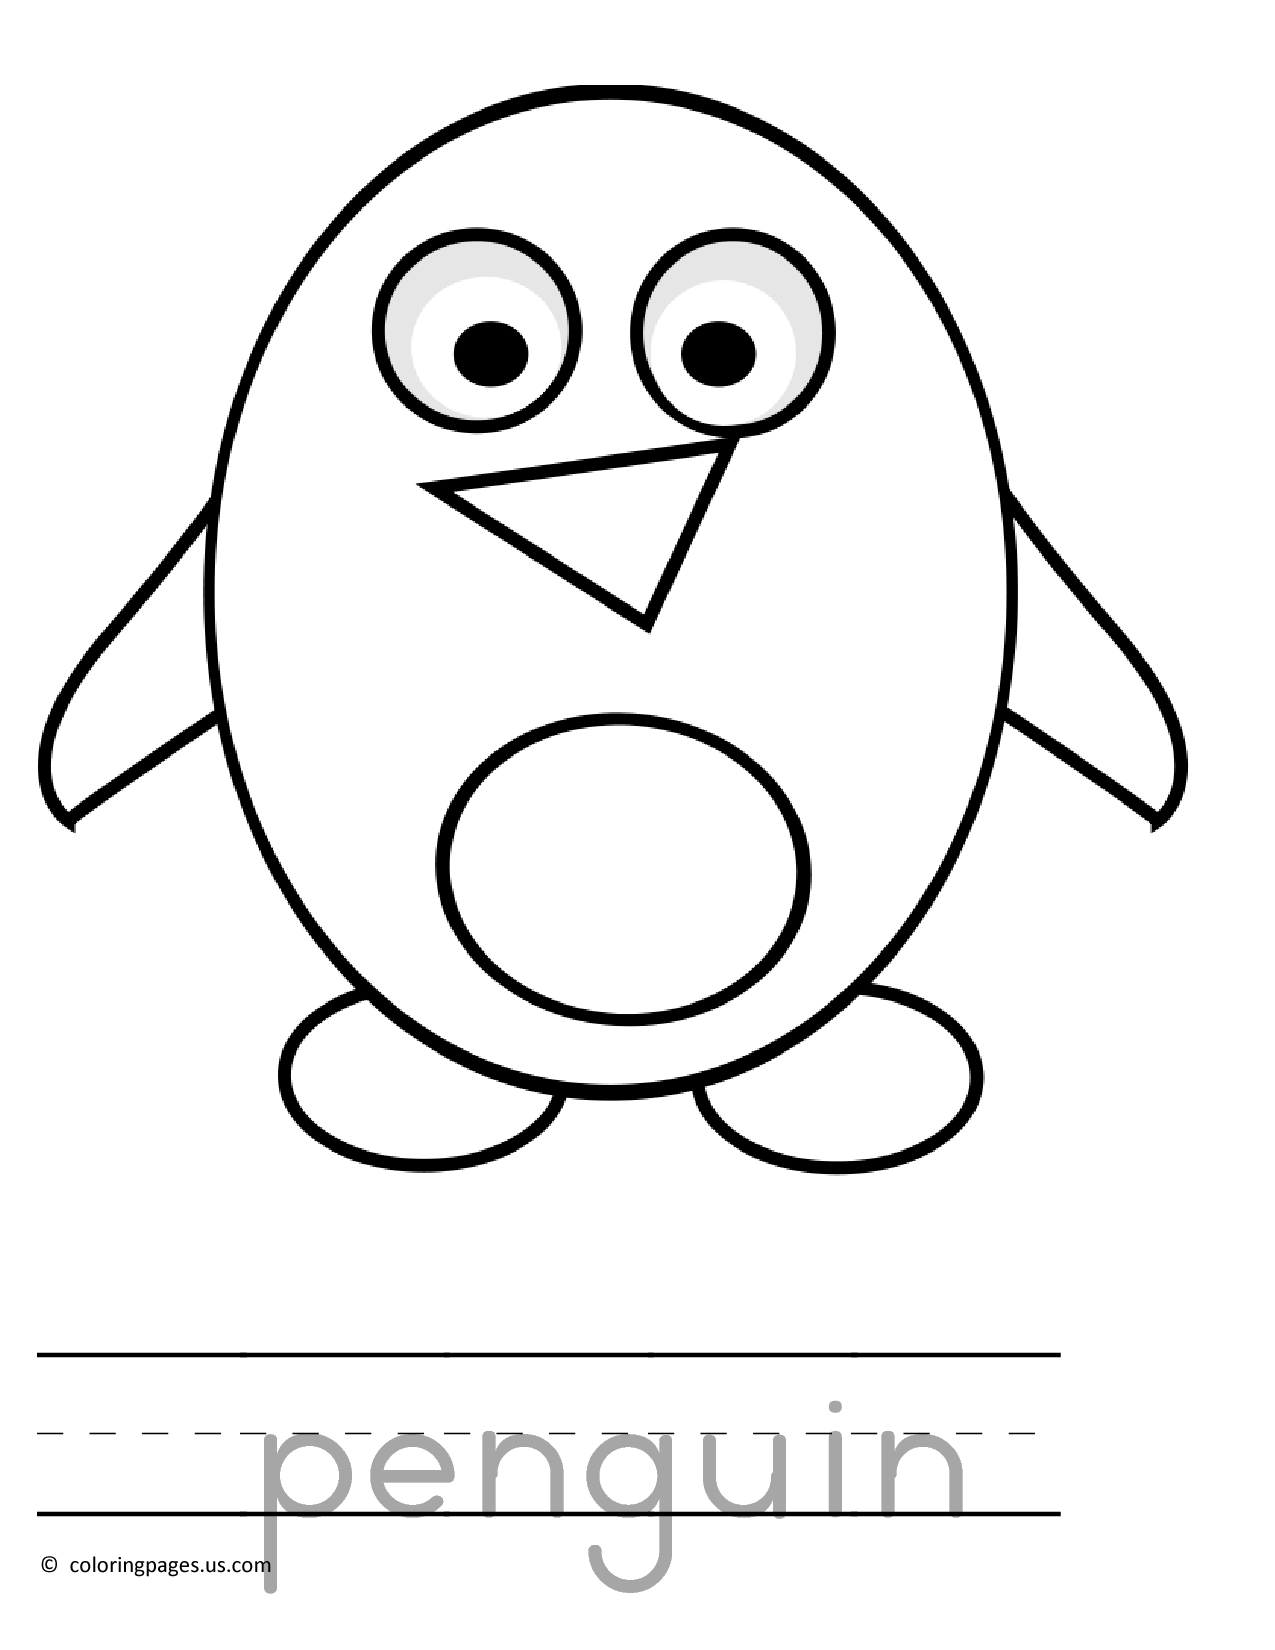 Penguin Coloring Page 534